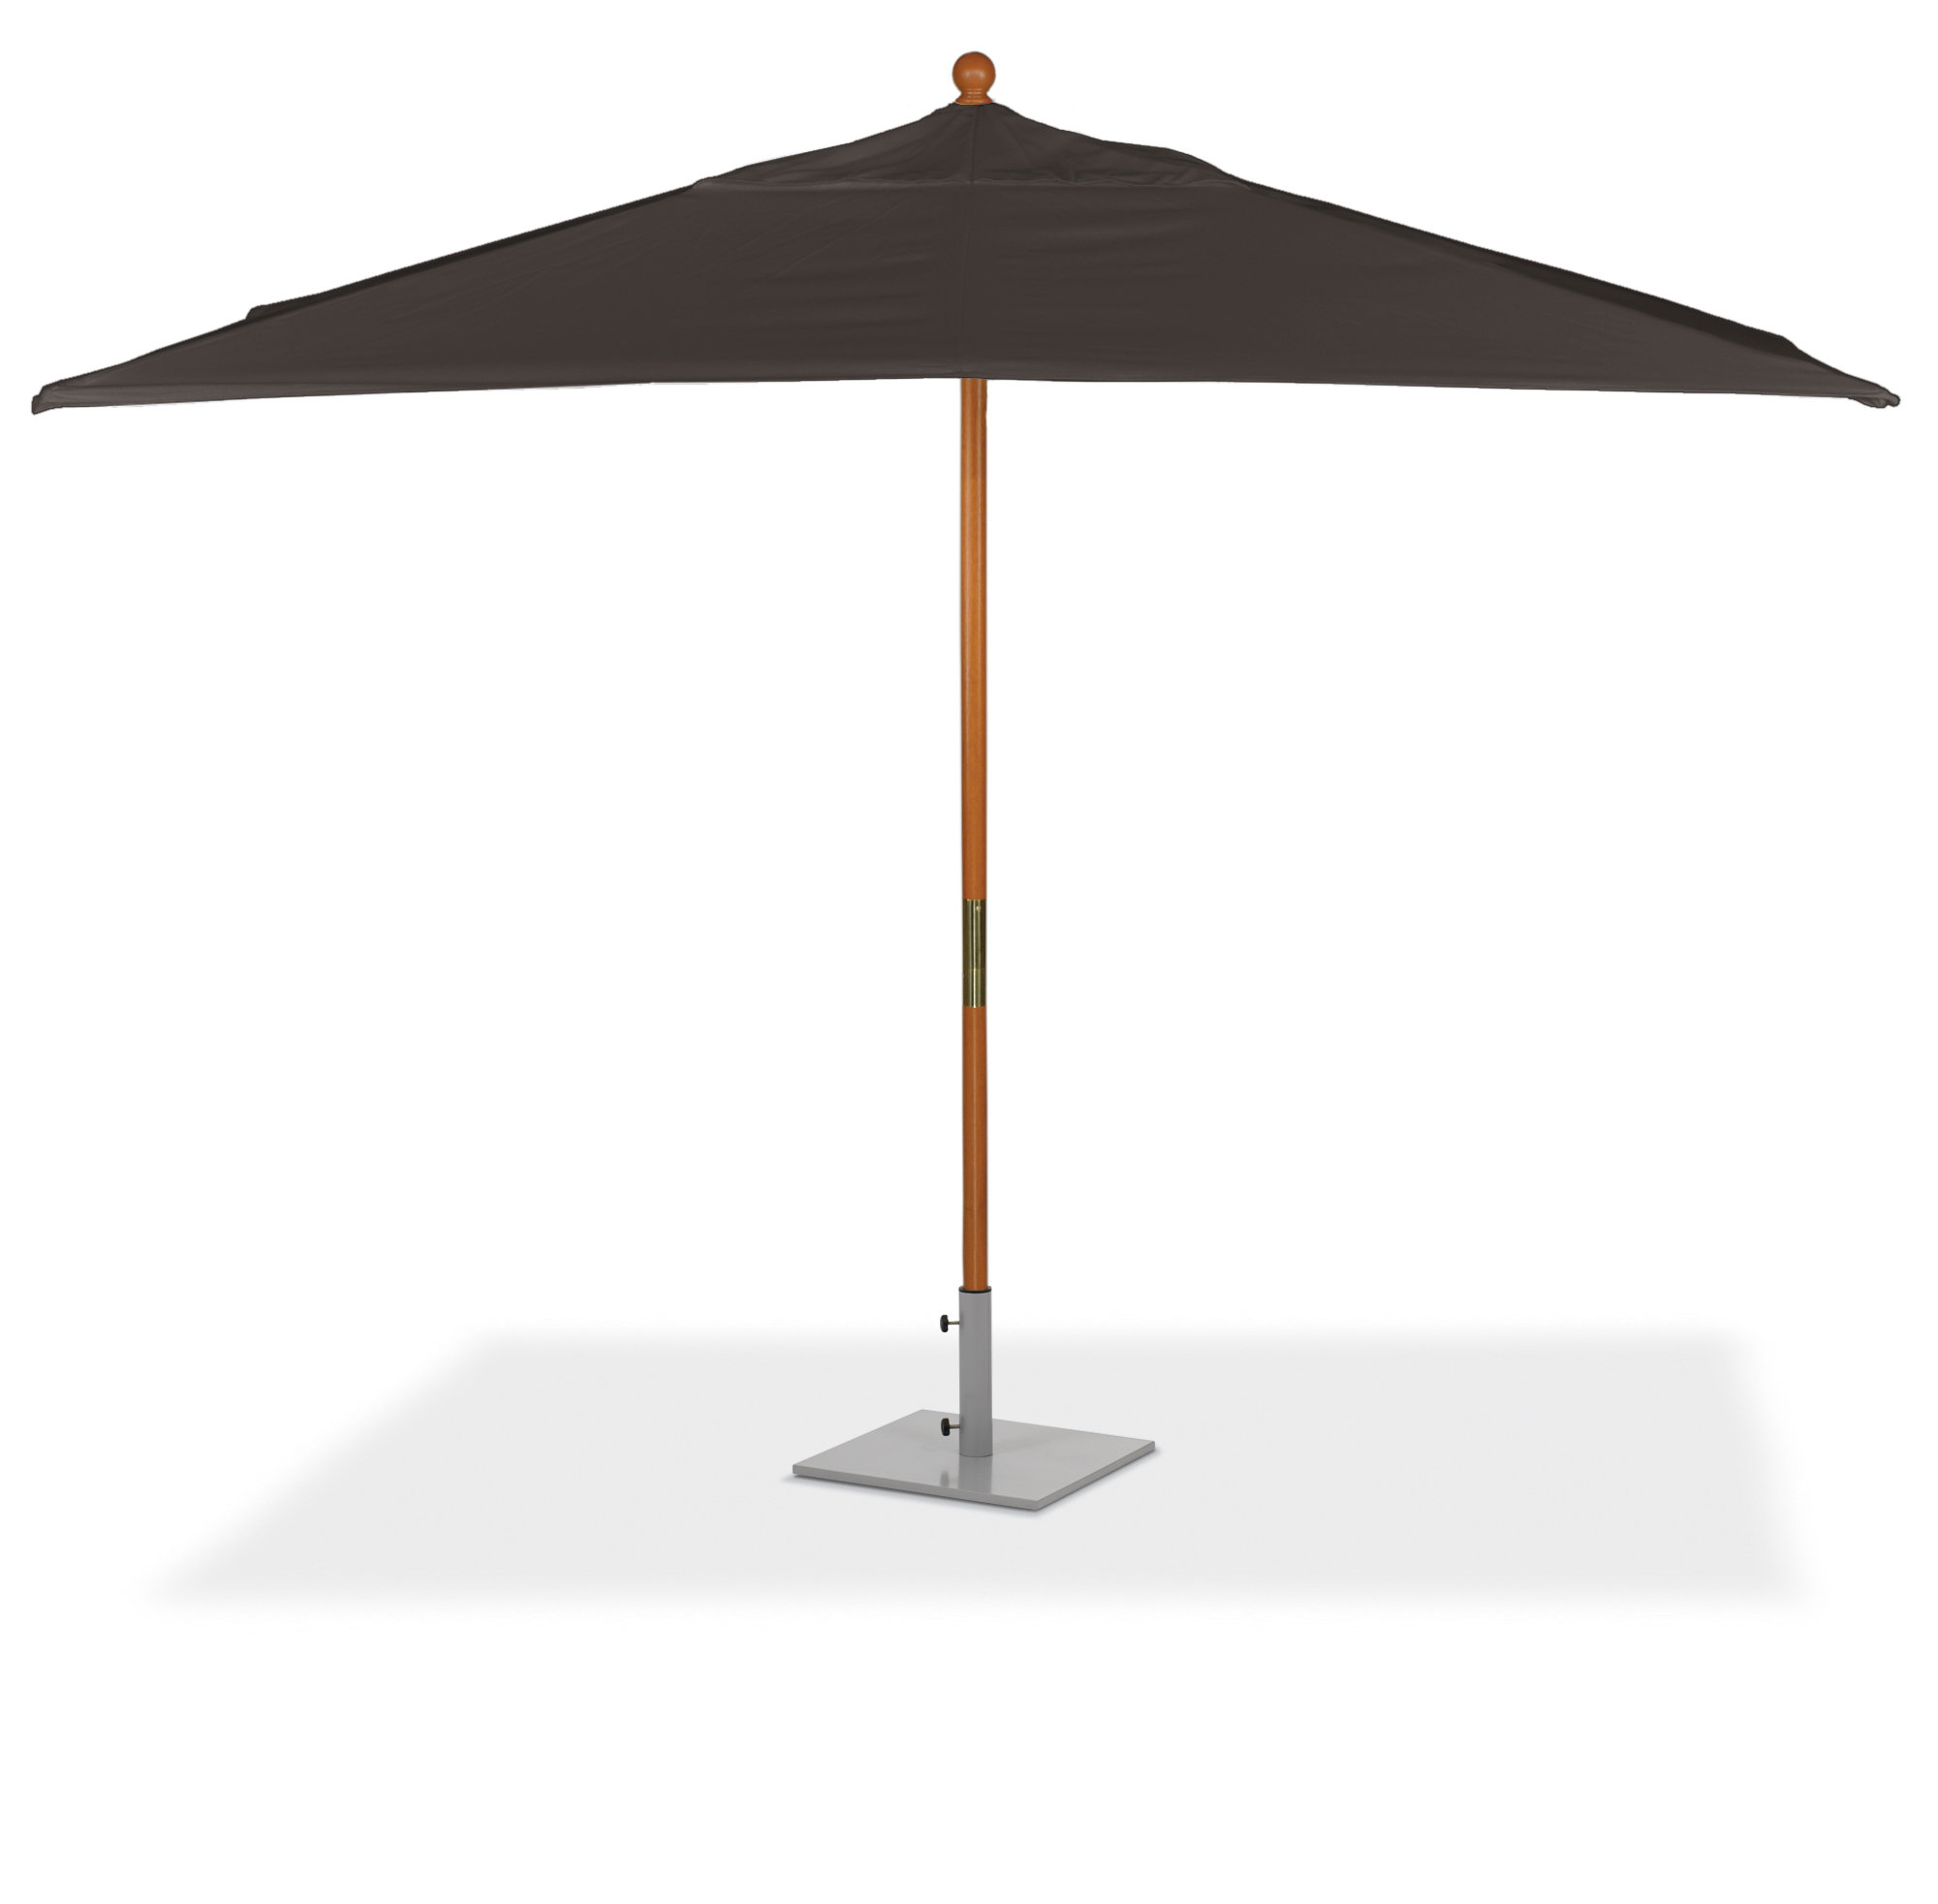 Widely Used Standwood 6' X 10' Rectangular Market Sunbrella Umbrella In Launceston Rectangular Market Umbrellas (View 17 of 20)